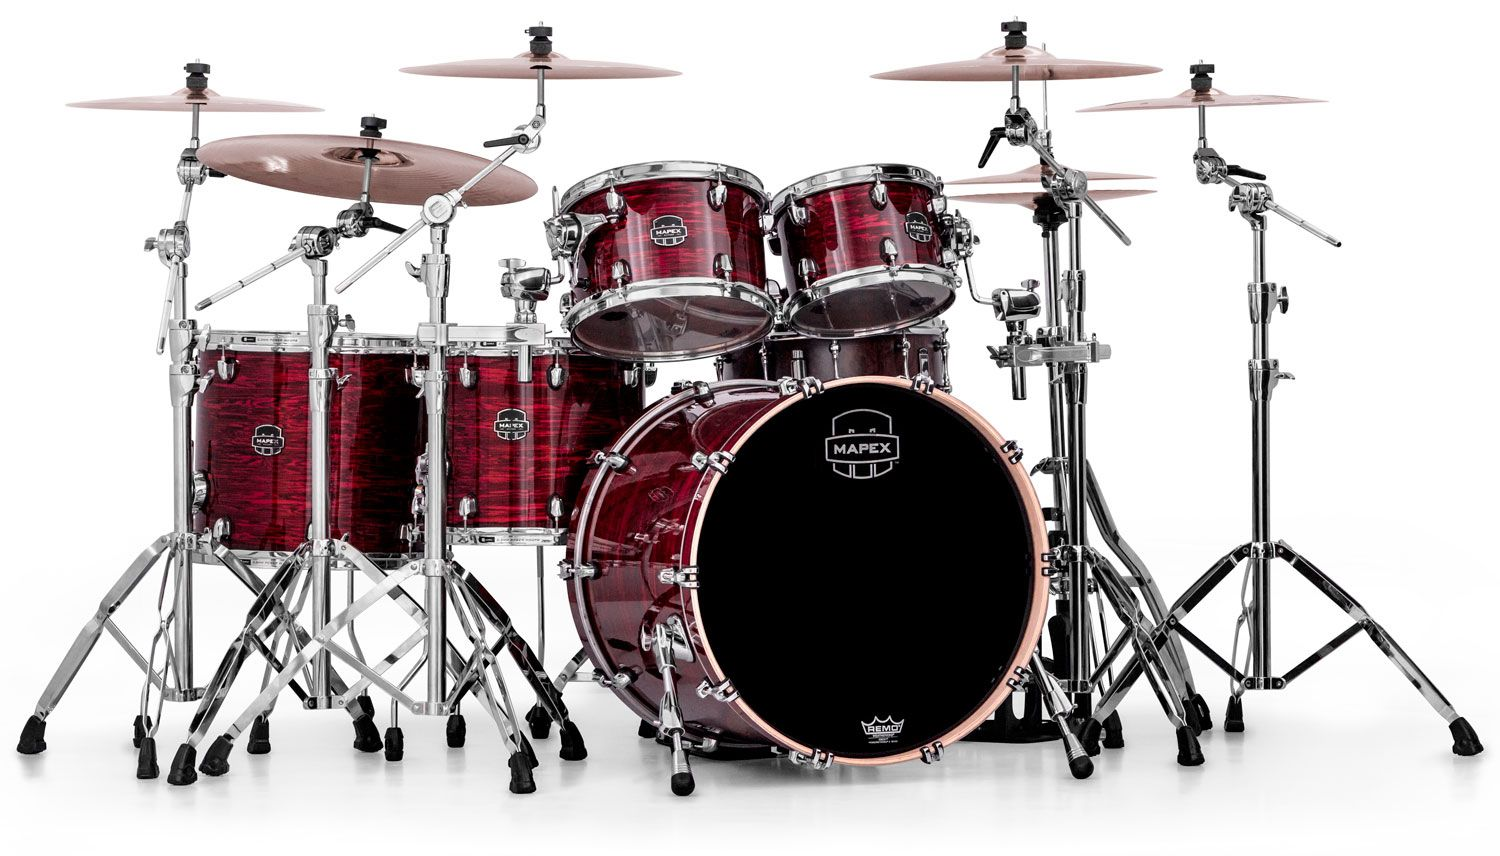 Mapex Drums Wallpaper